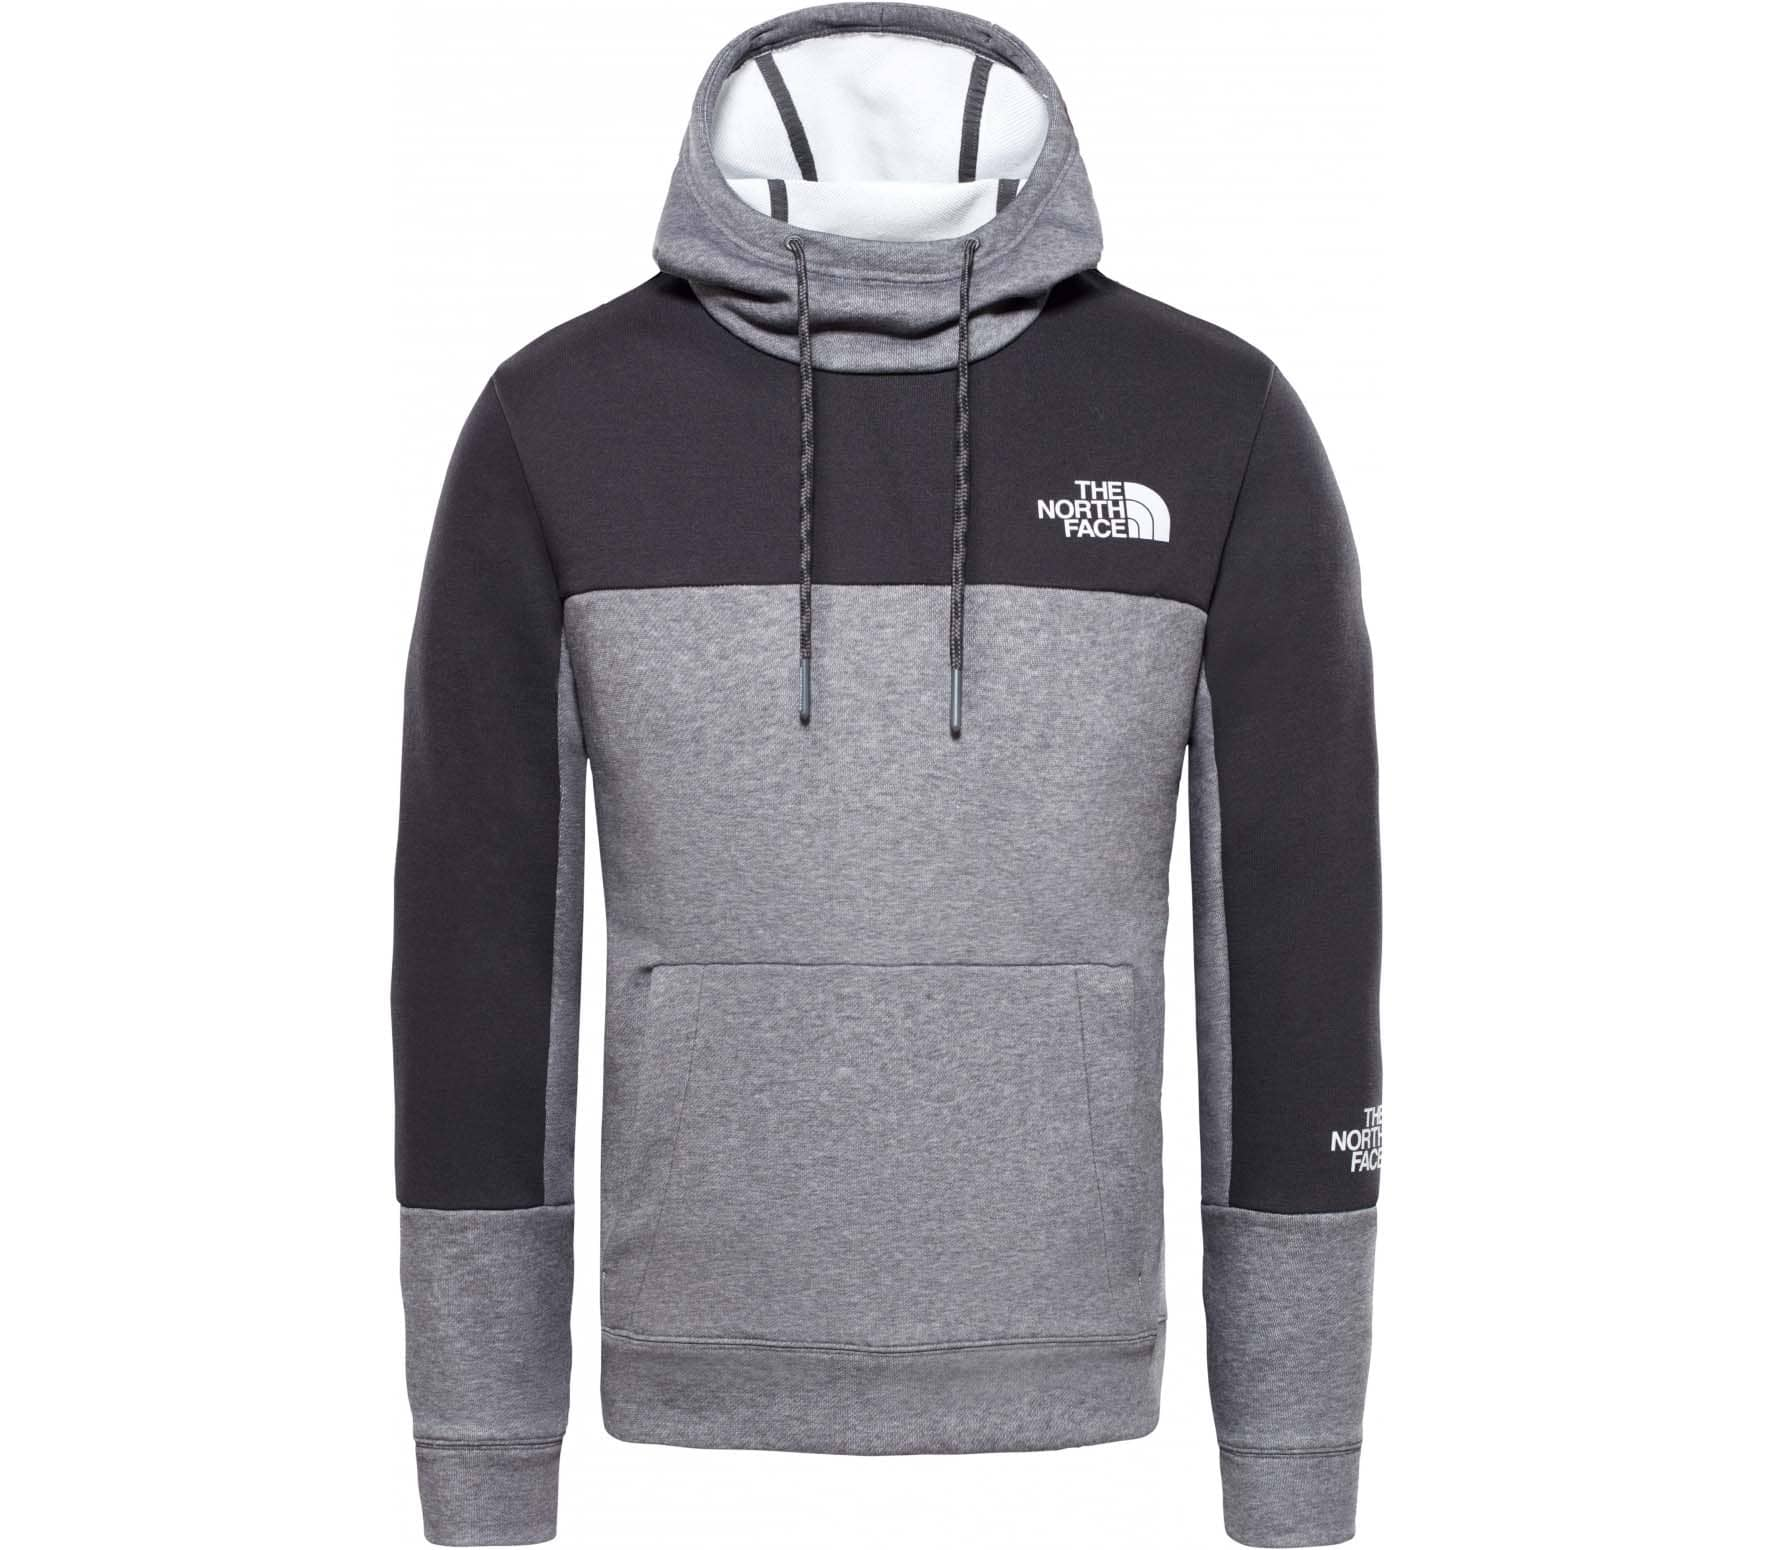 size 40 86af2 4c4fc The North Face Light Herren Hoodie grau